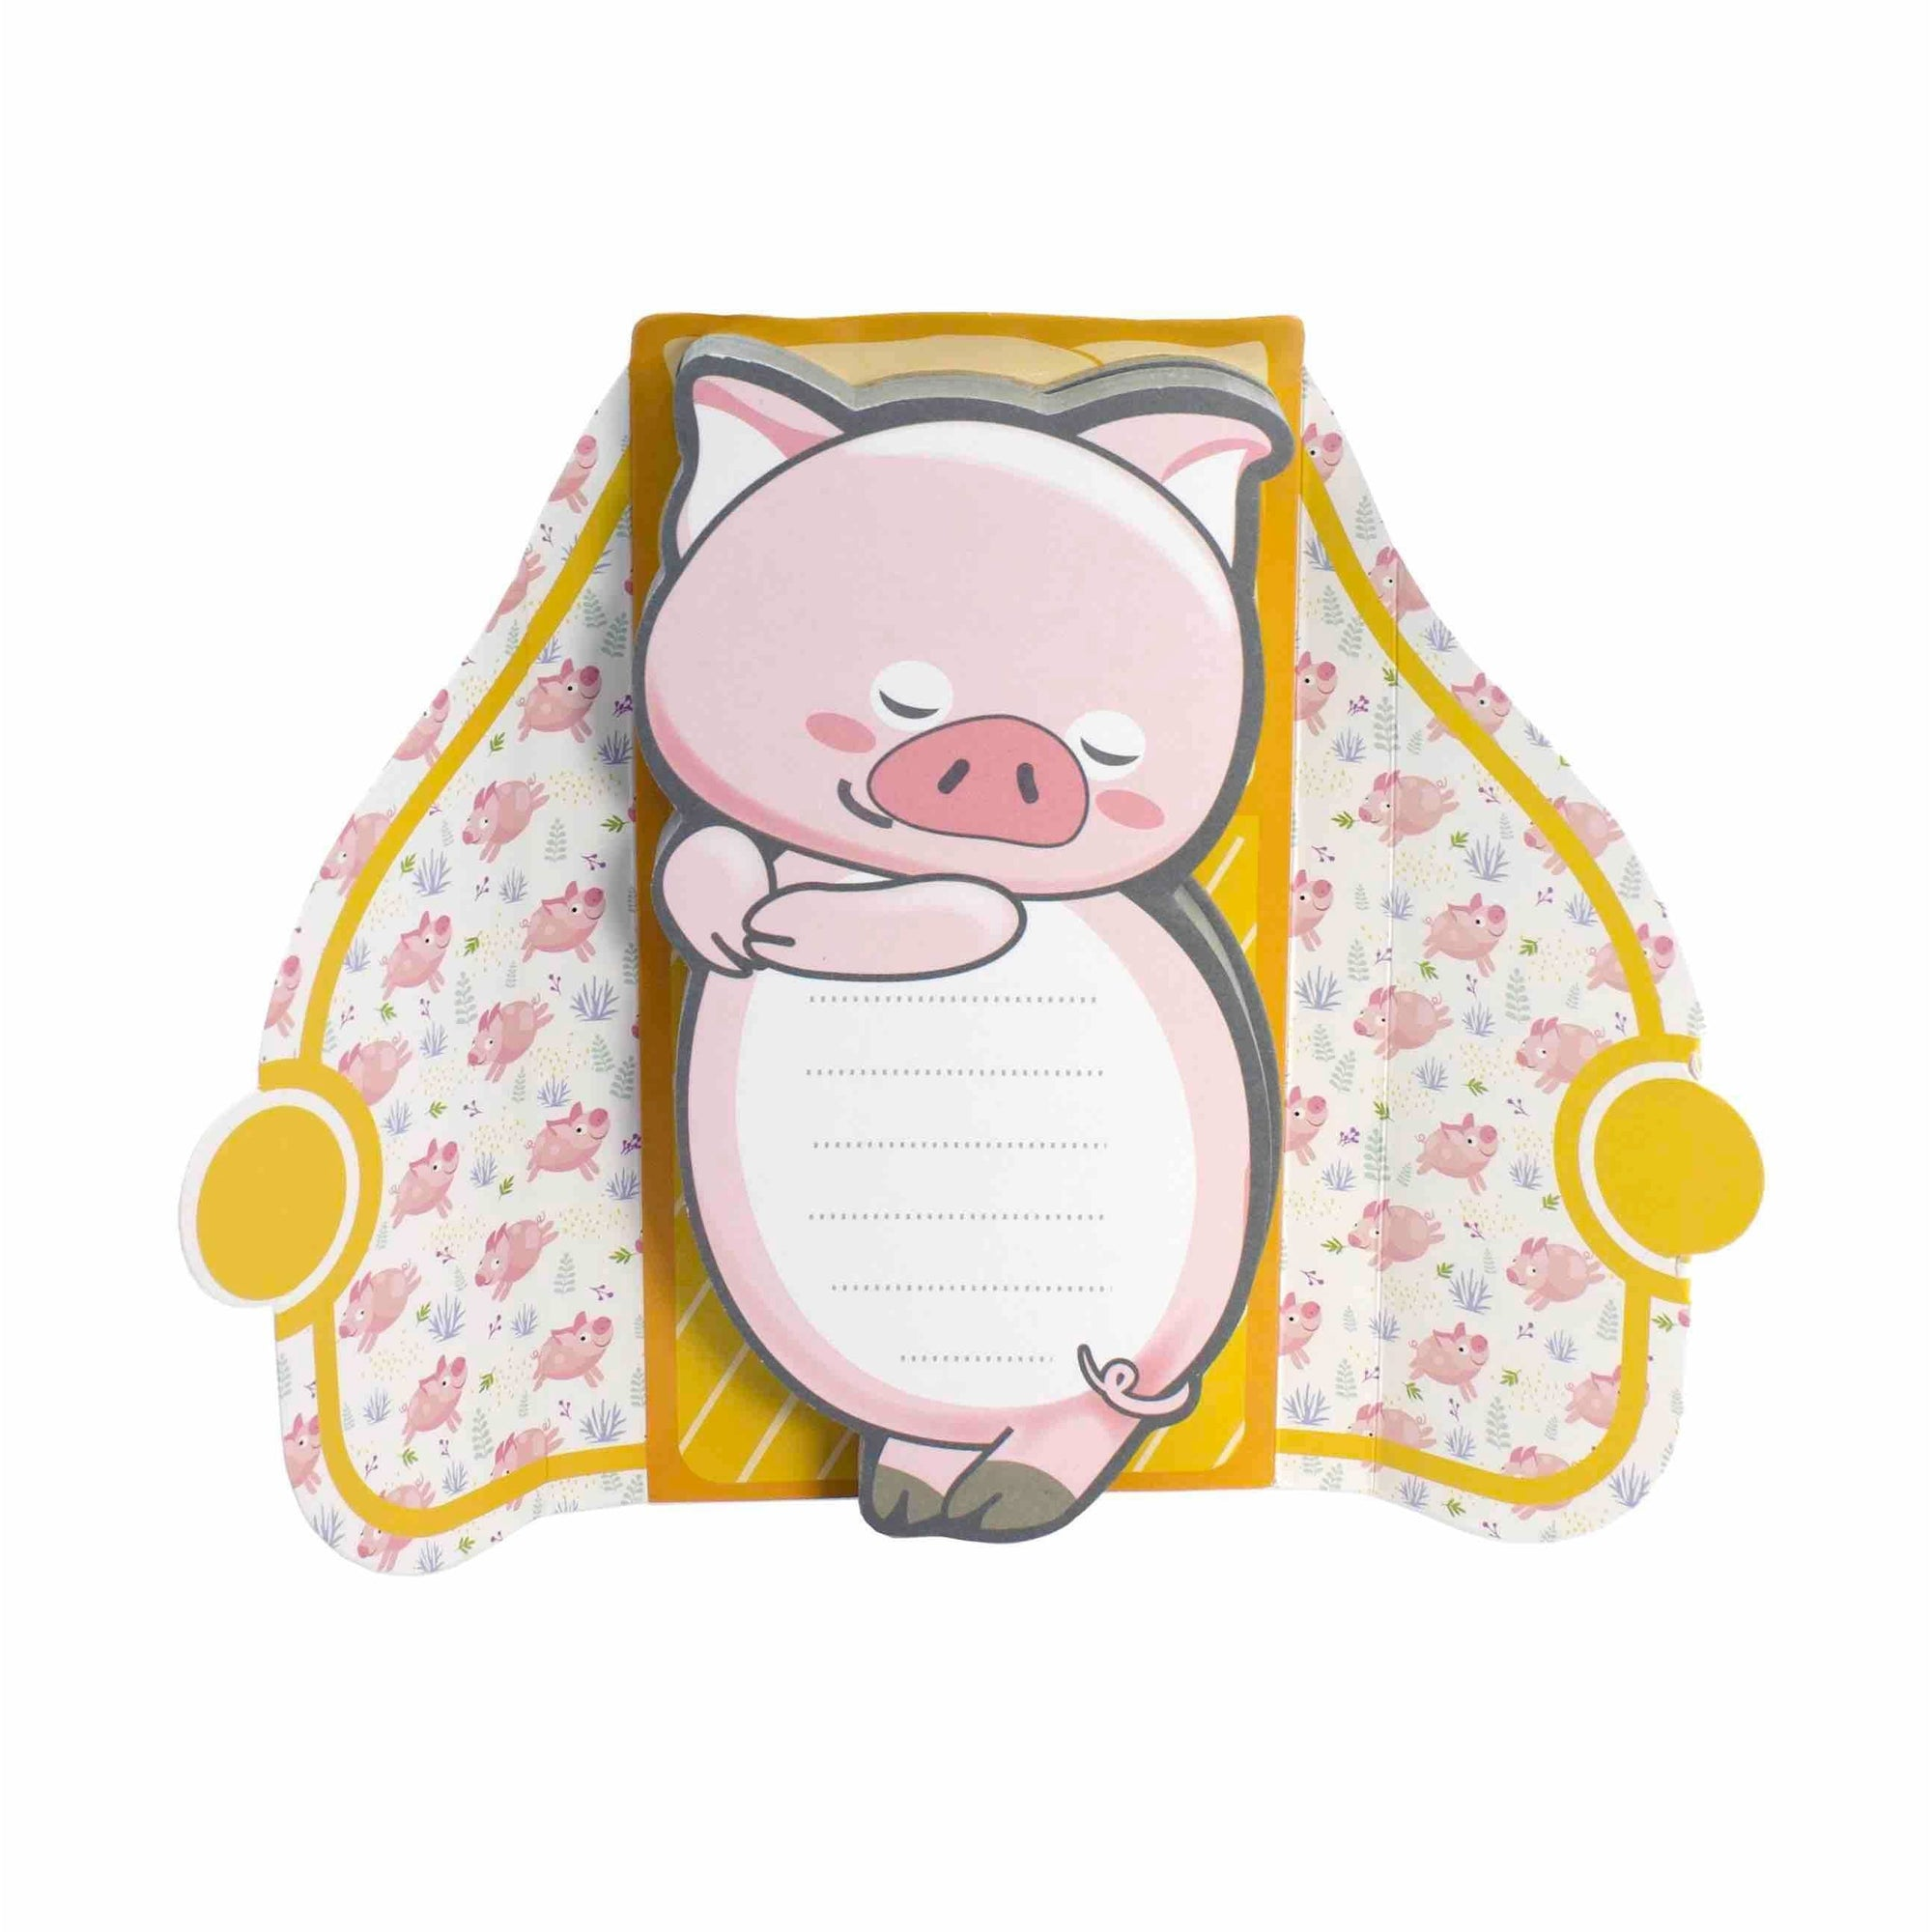 Streamline Stationery Pigs in a Blanket Notepad